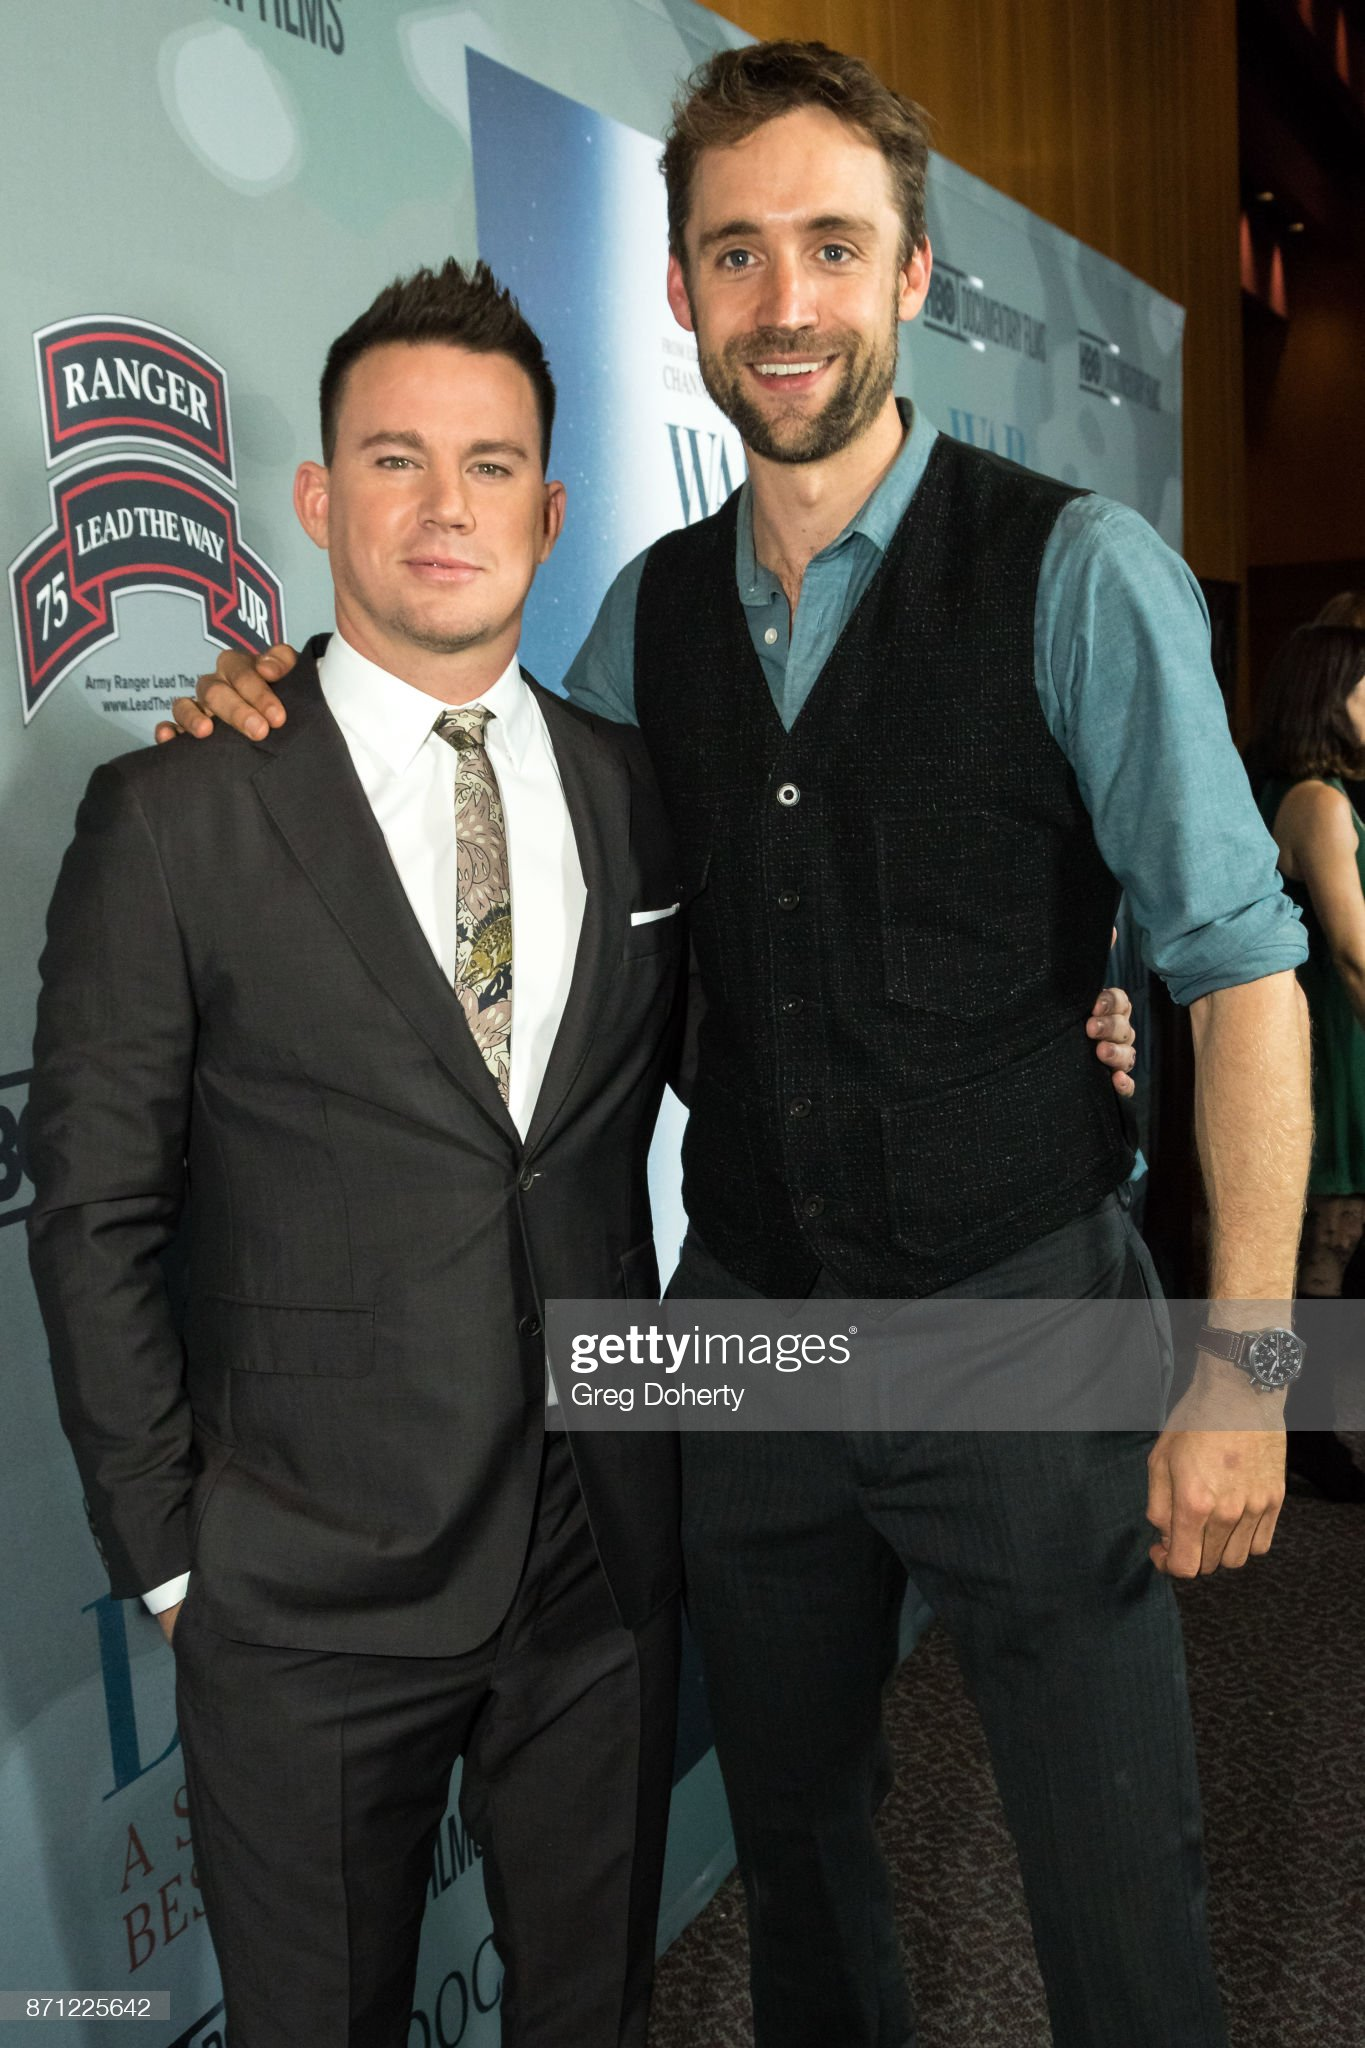 ¿Cuánto mide Channing Tatum? - Altura - Real height Executive-producers-channing-tatum-and-reid-carolin-attend-the-hbo-picture-id871225642?s=2048x2048